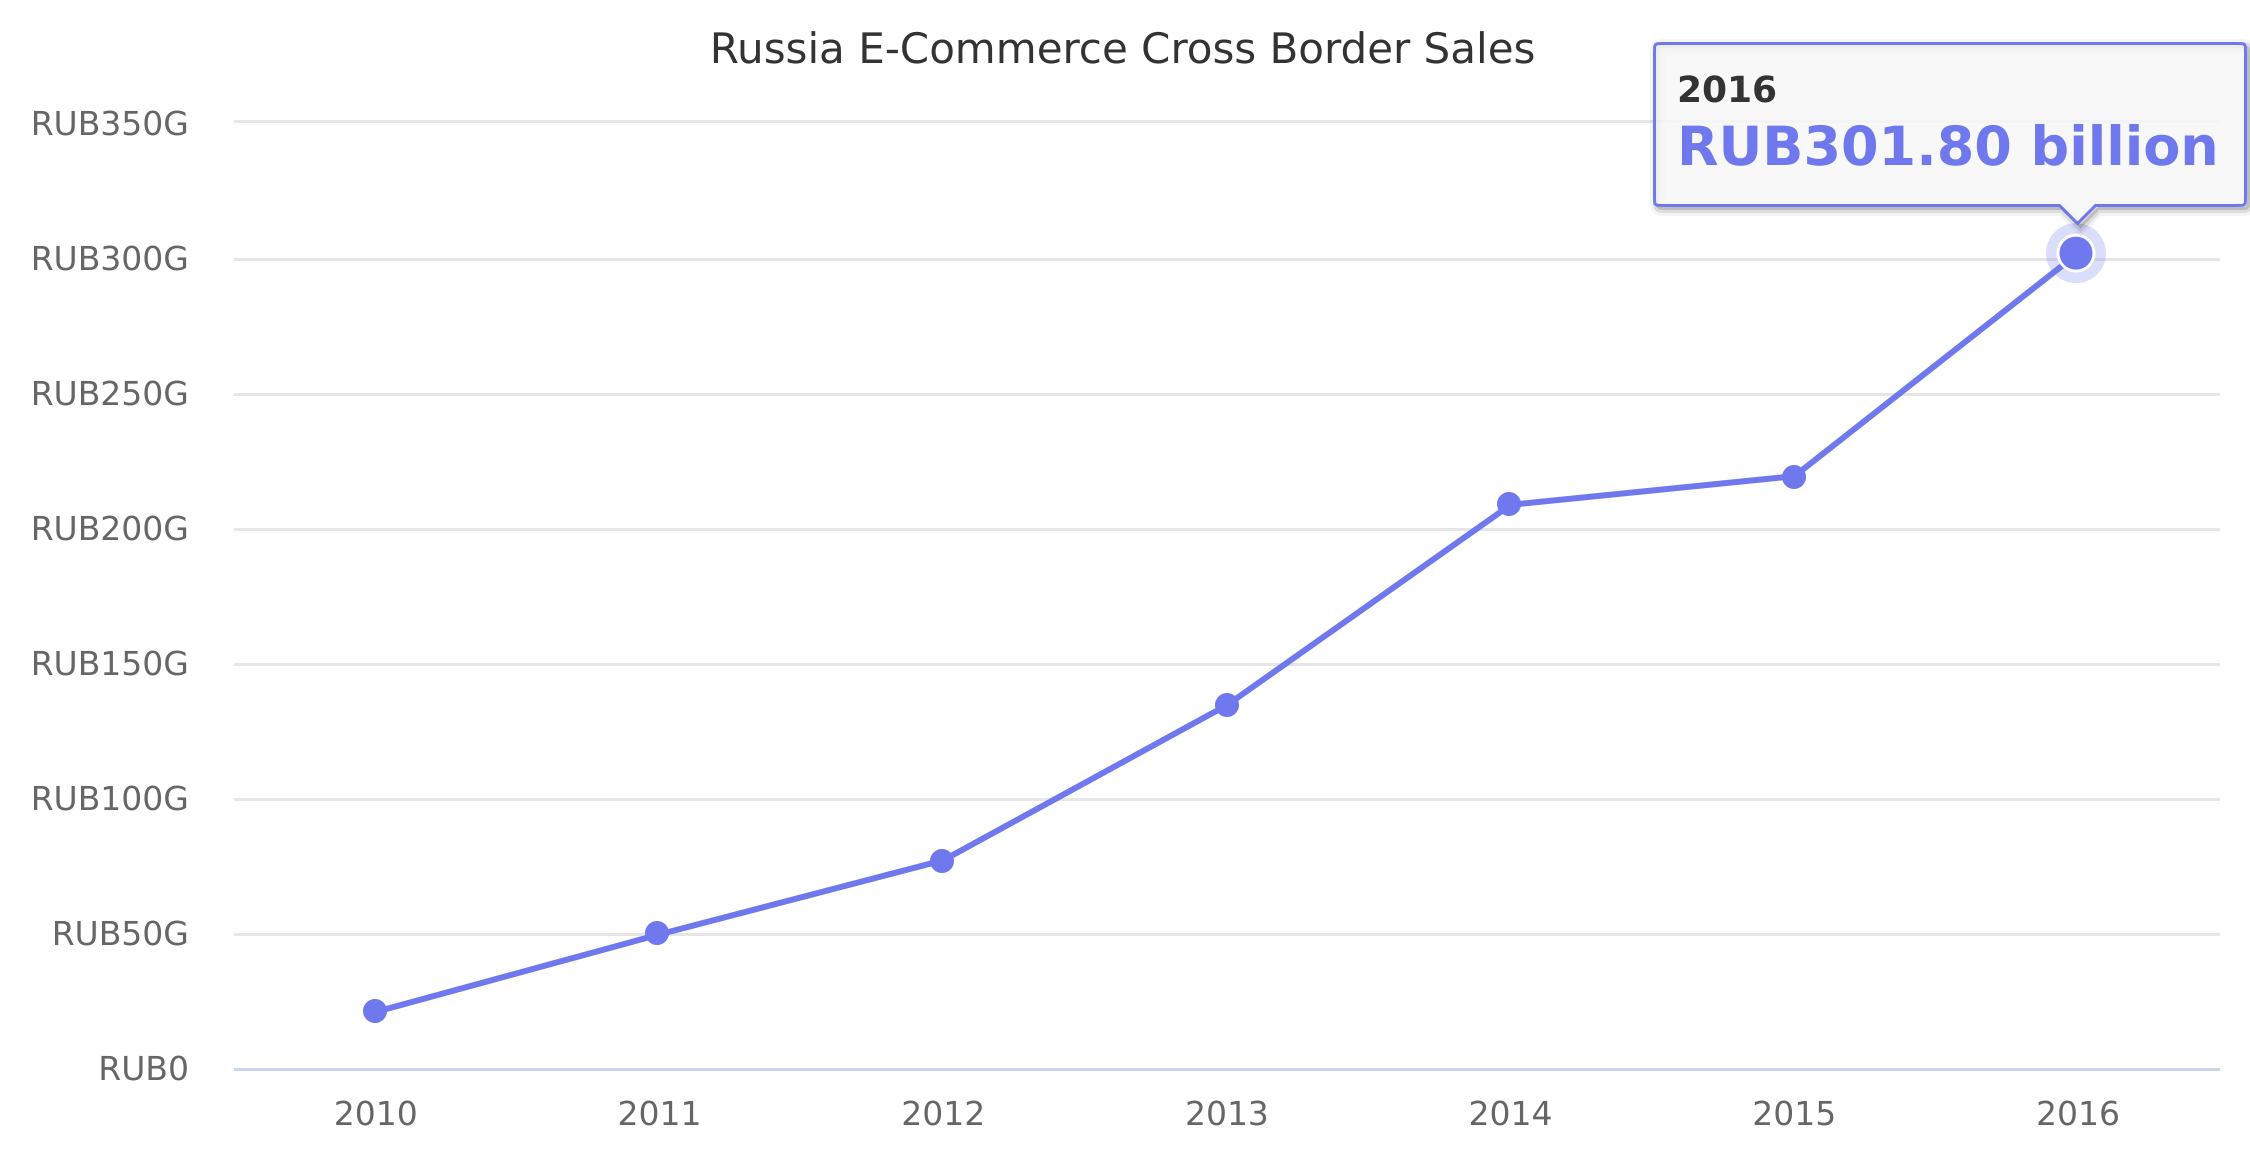 Russia E-Commerce Cross Border Sales 2010-2016